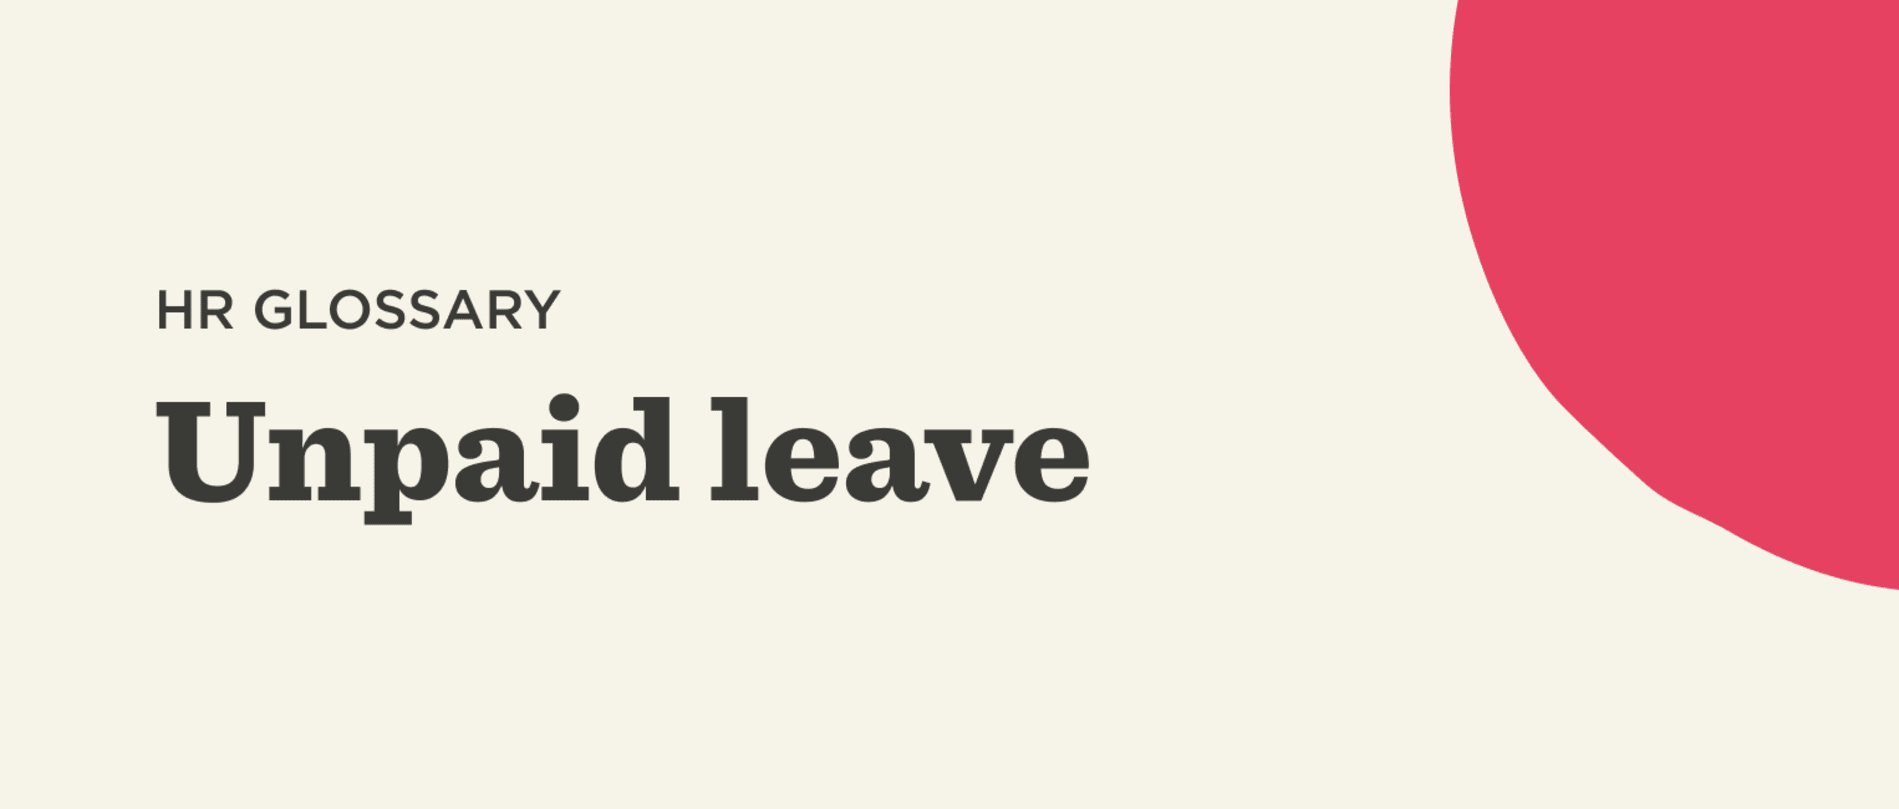 Unpaid-leave-Glossary-banner